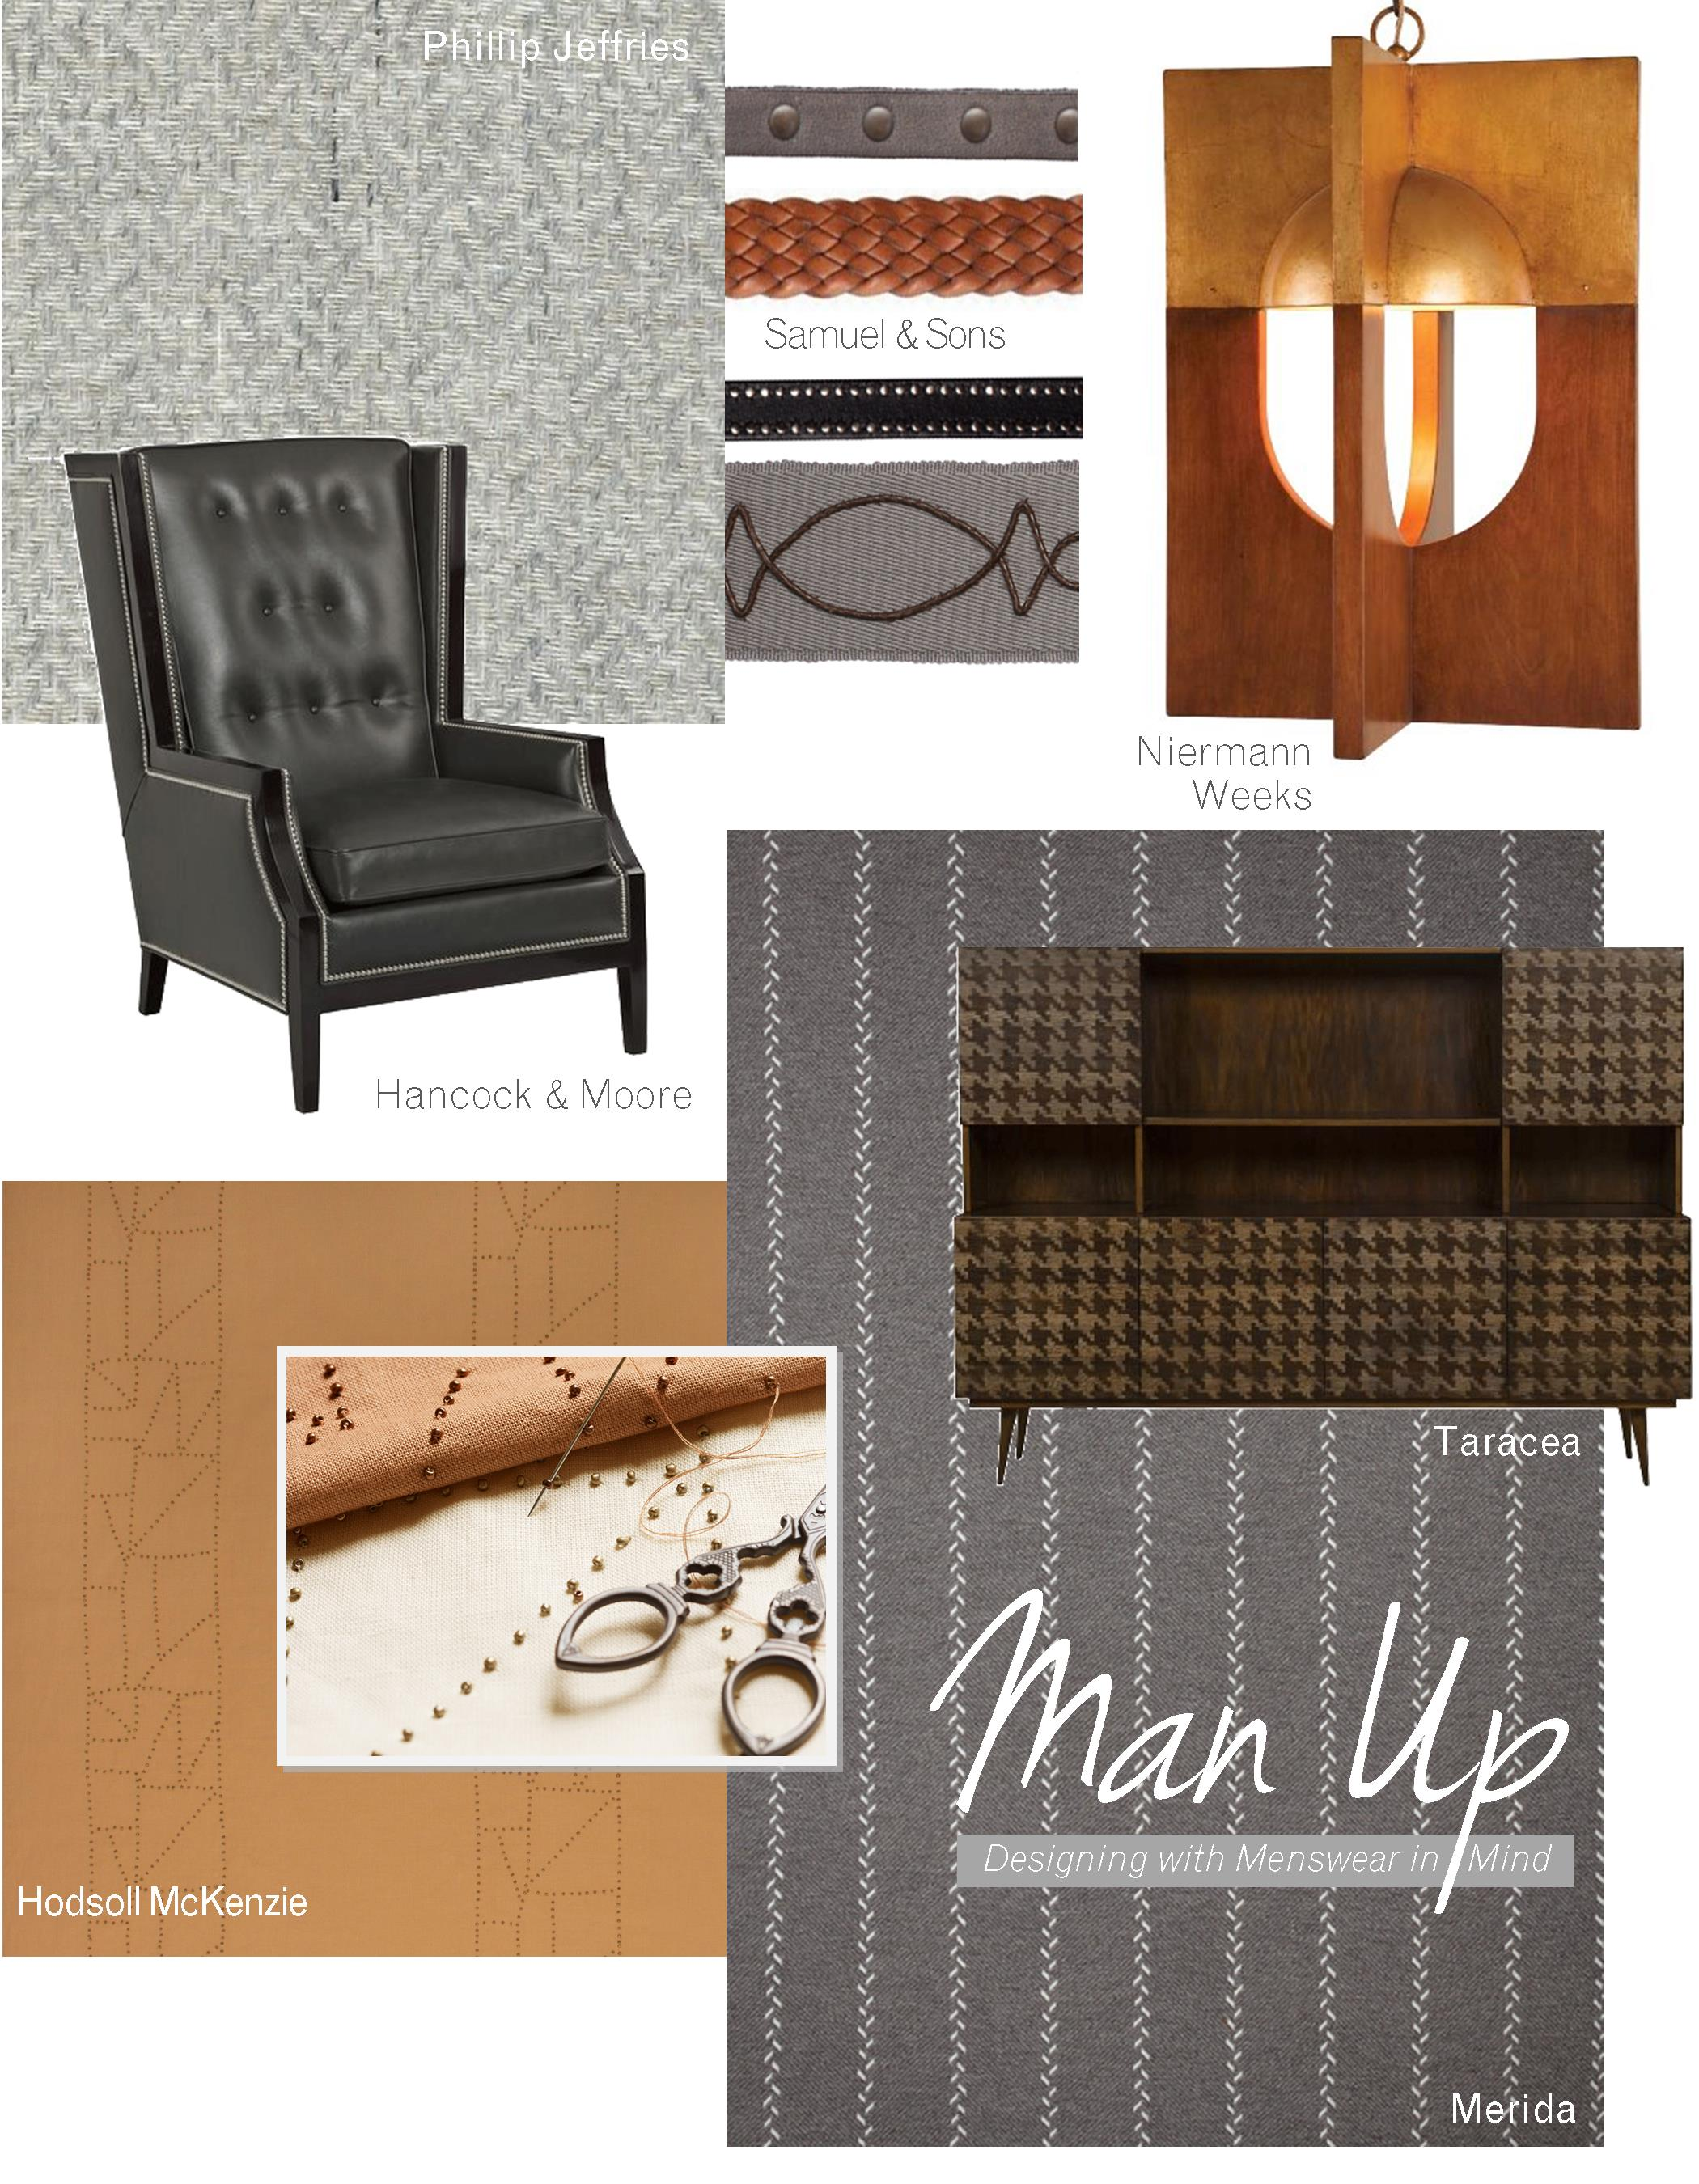 Home Furnishings for a Menswear-Inspired Space